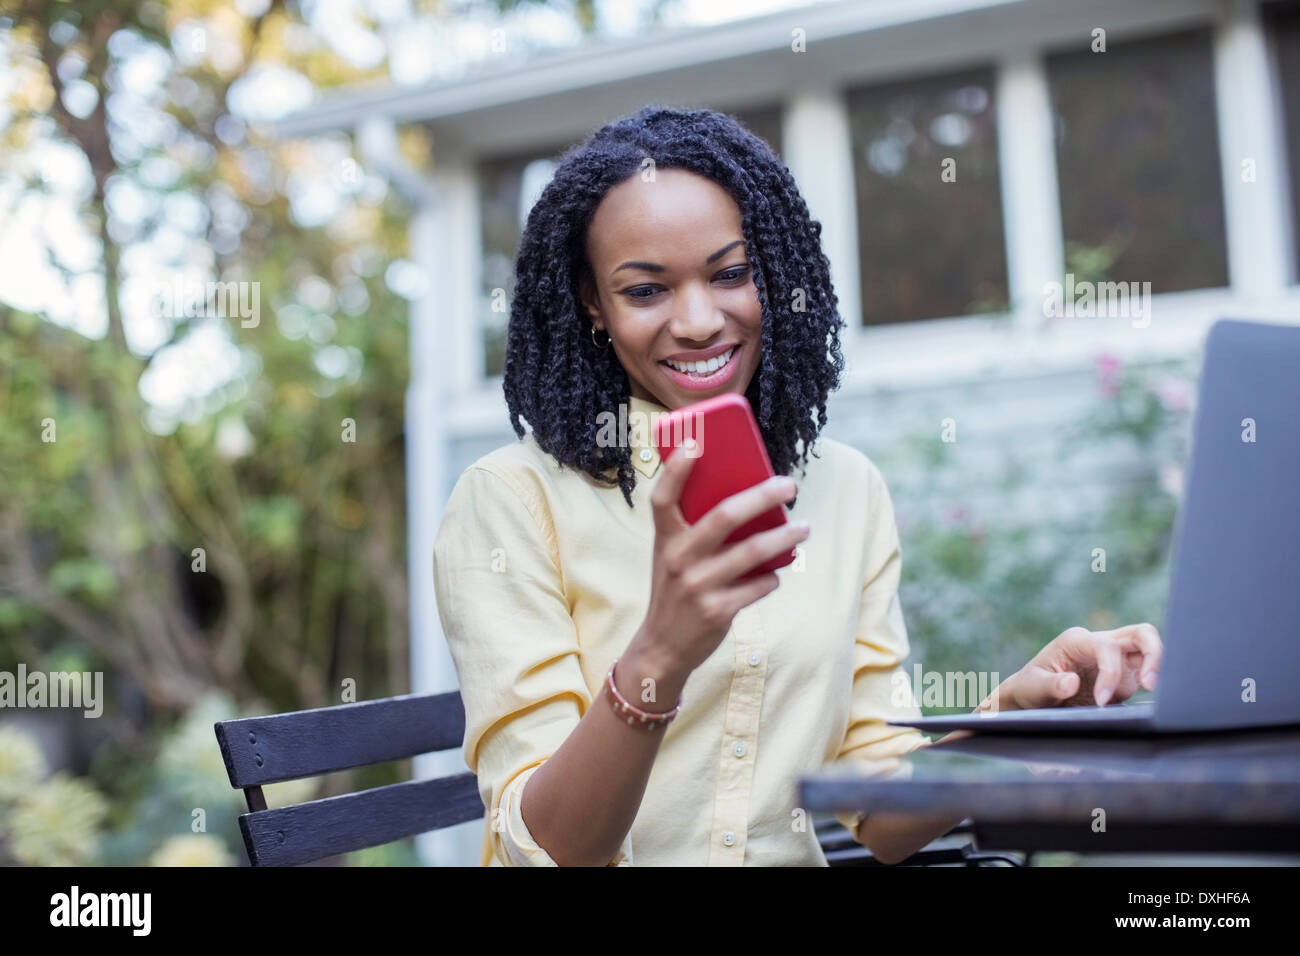 Smiling woman using cell phone and laptop on patio - Stock Image